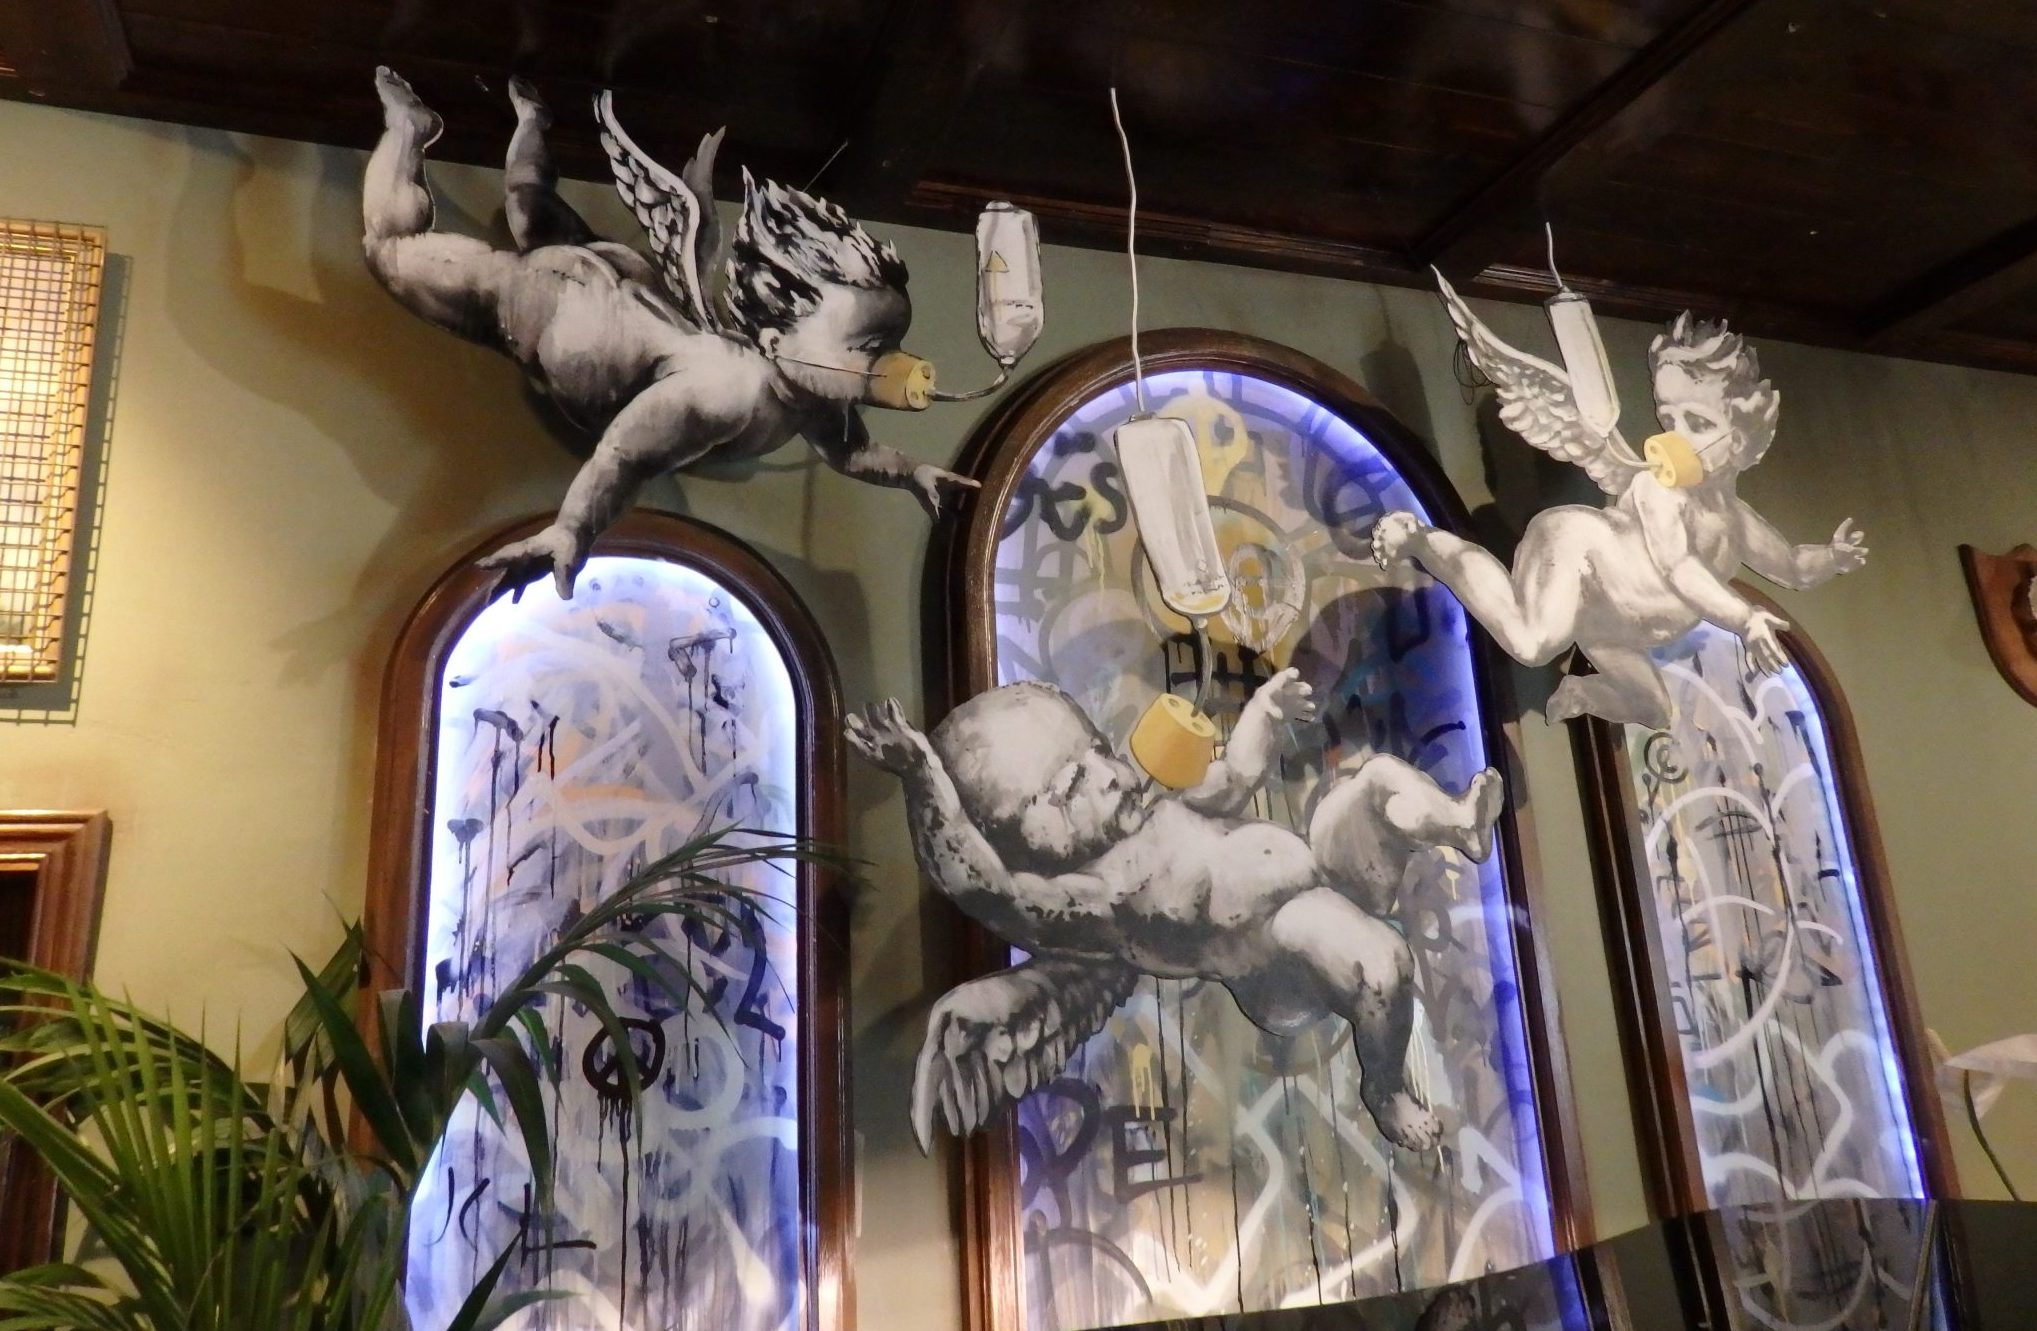 A closer look at the cherubs above the piano